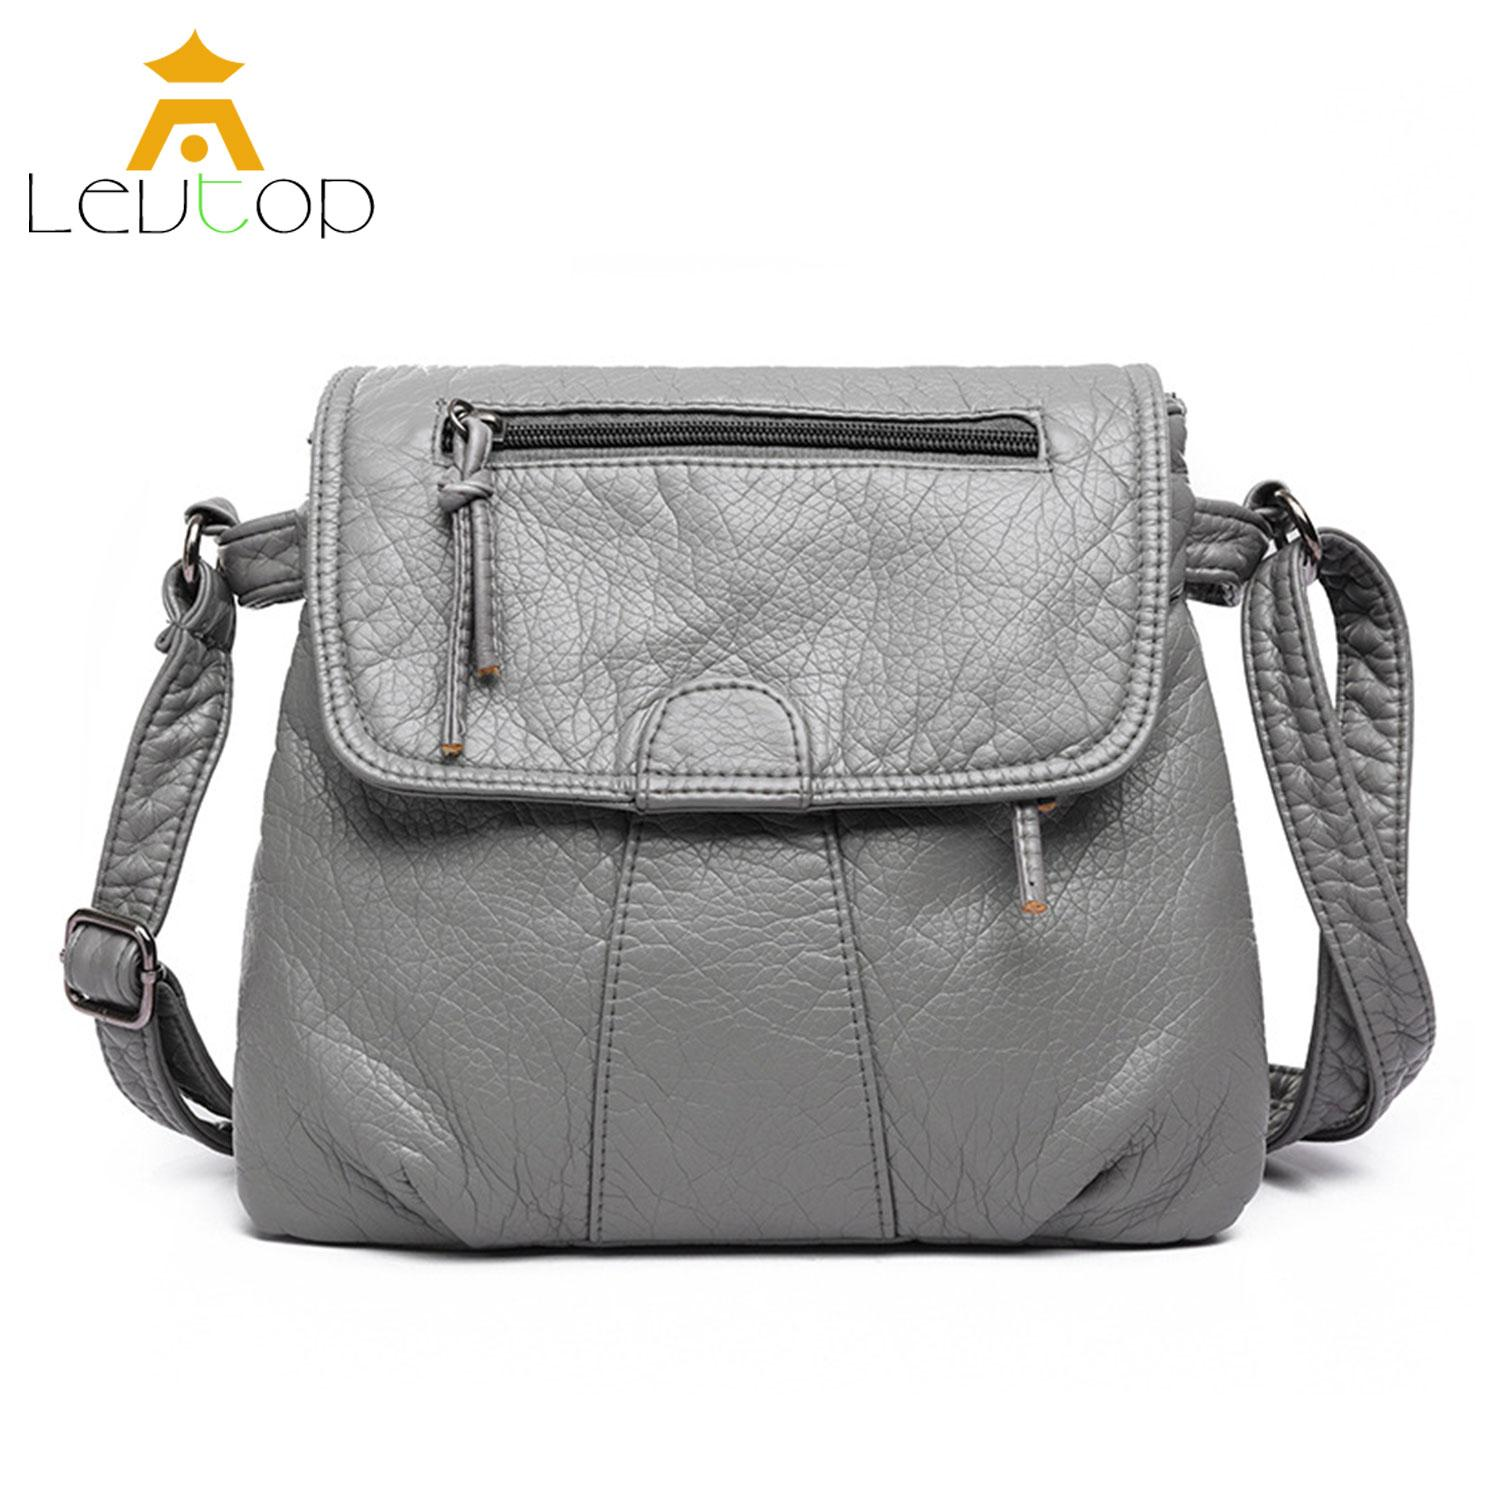 LEVTOP Sling Bag Handbags Women Crossbody Shoulder Bags Soft PU Leather Messenger Cross Body Bags